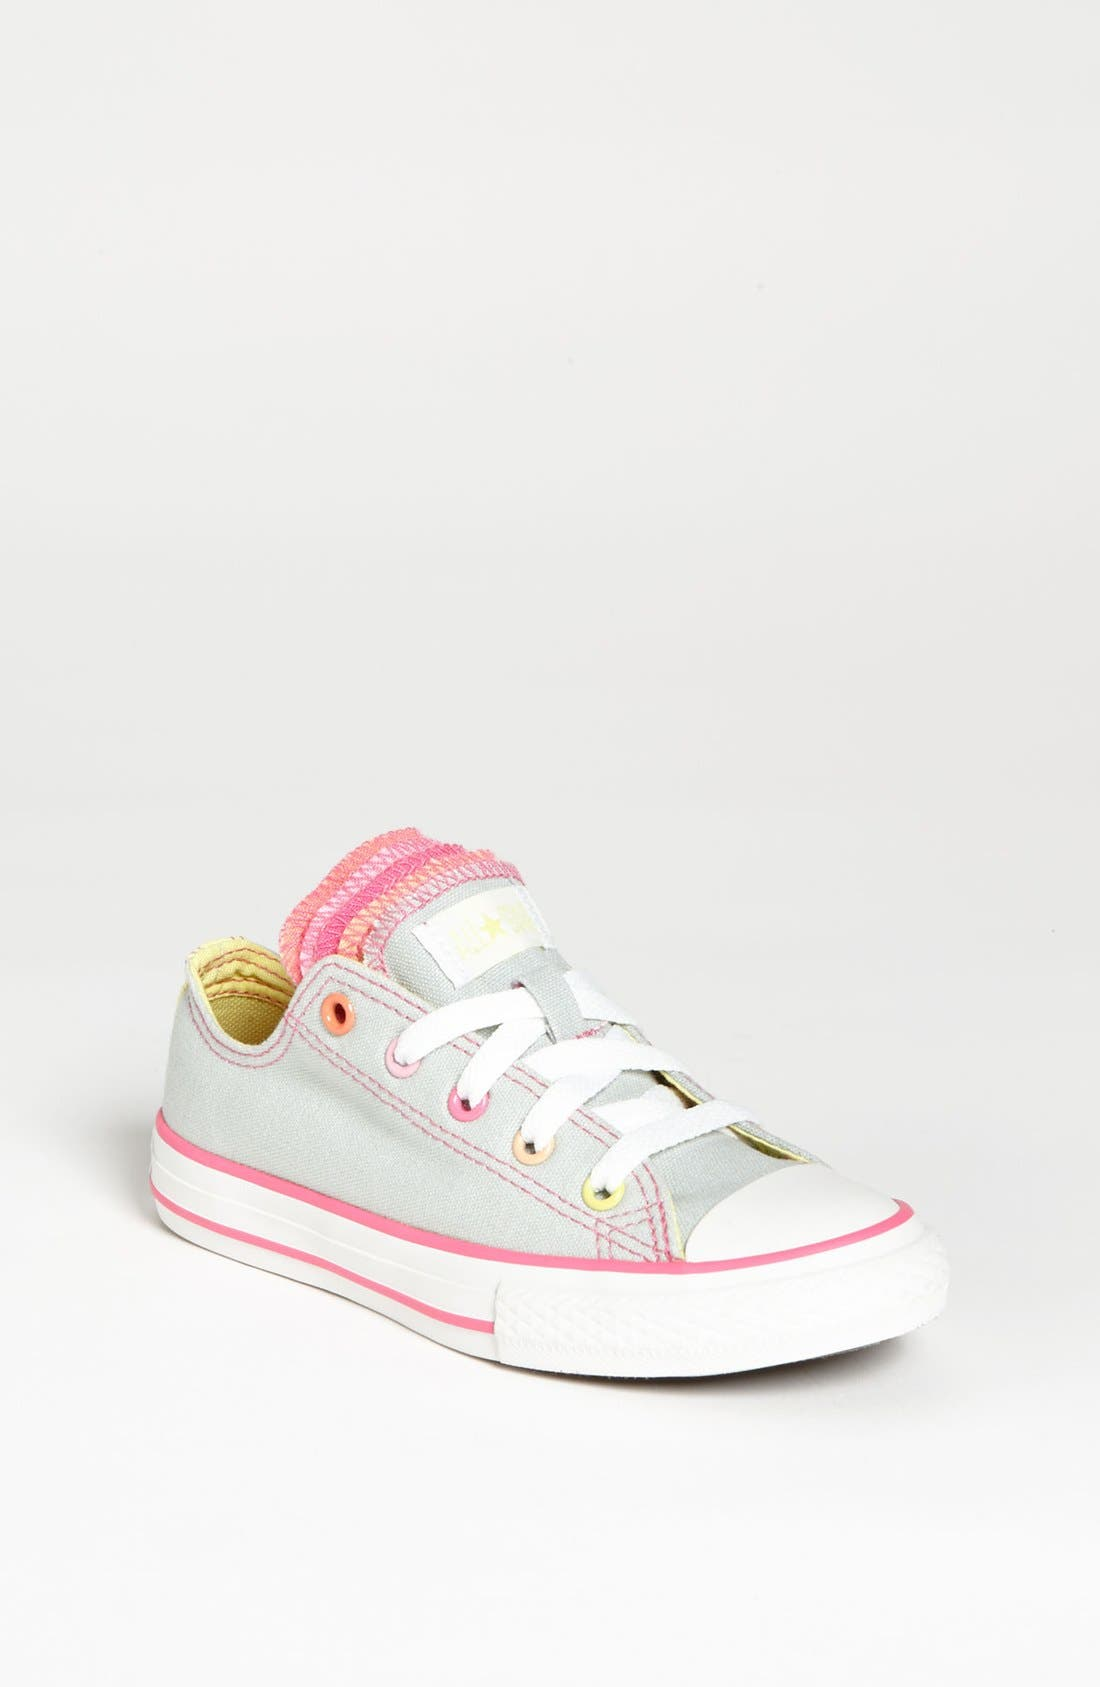 Main Image - Converse All Star® Multi-Tongue Sneaker (Toddler, Little Kid & Big Kid)